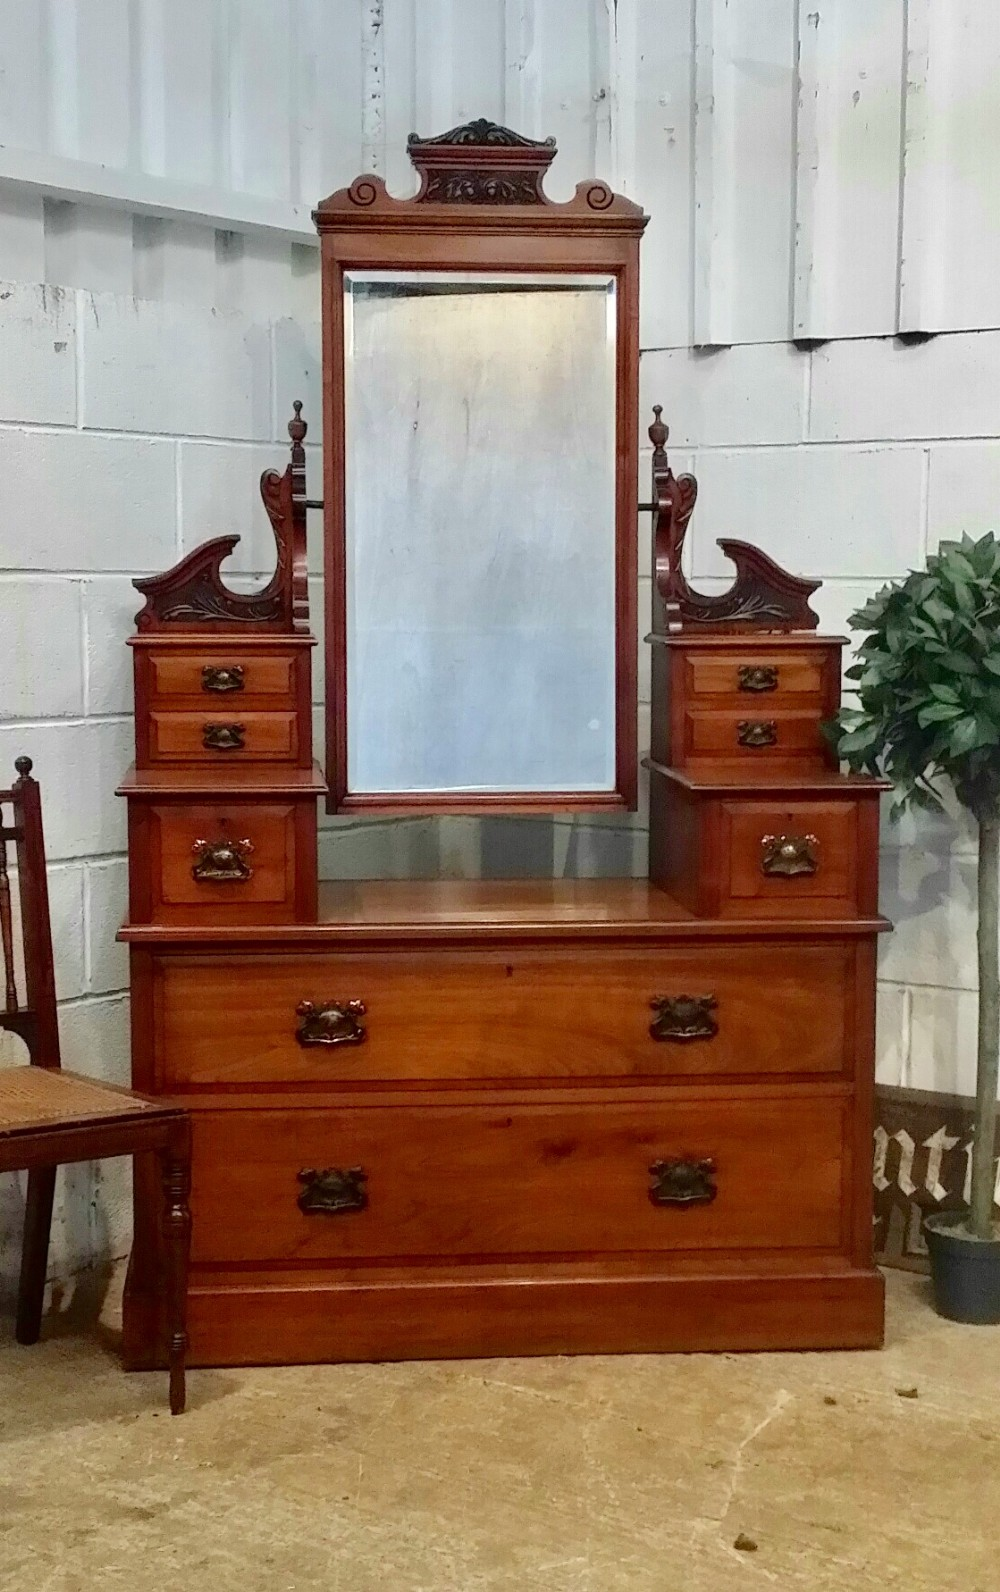 antique late victorian art nouveau walnut dressing table chest c1890